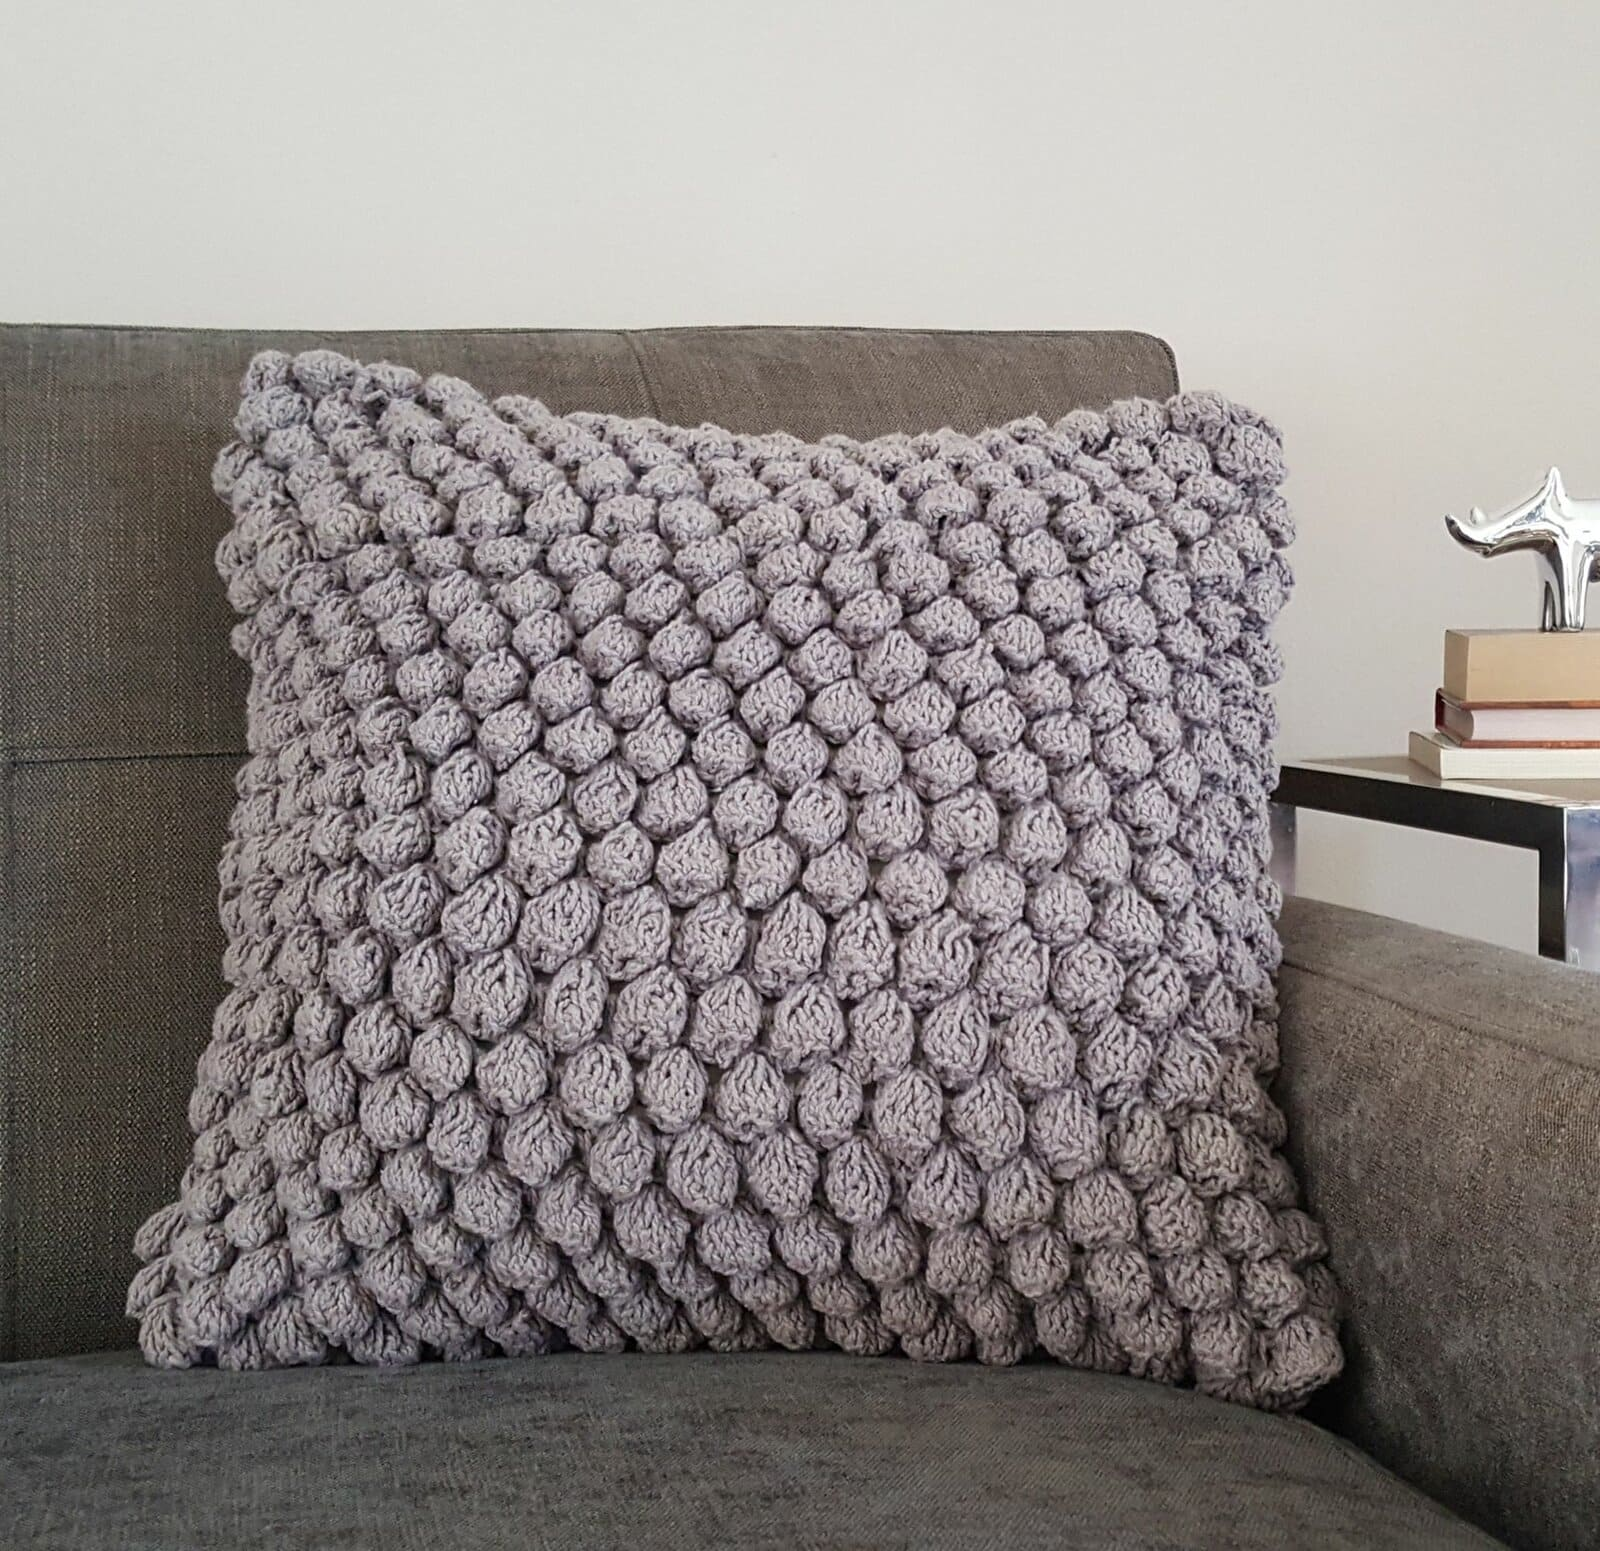 Add More Texture With a Hand-Crocheted Throw Pillow